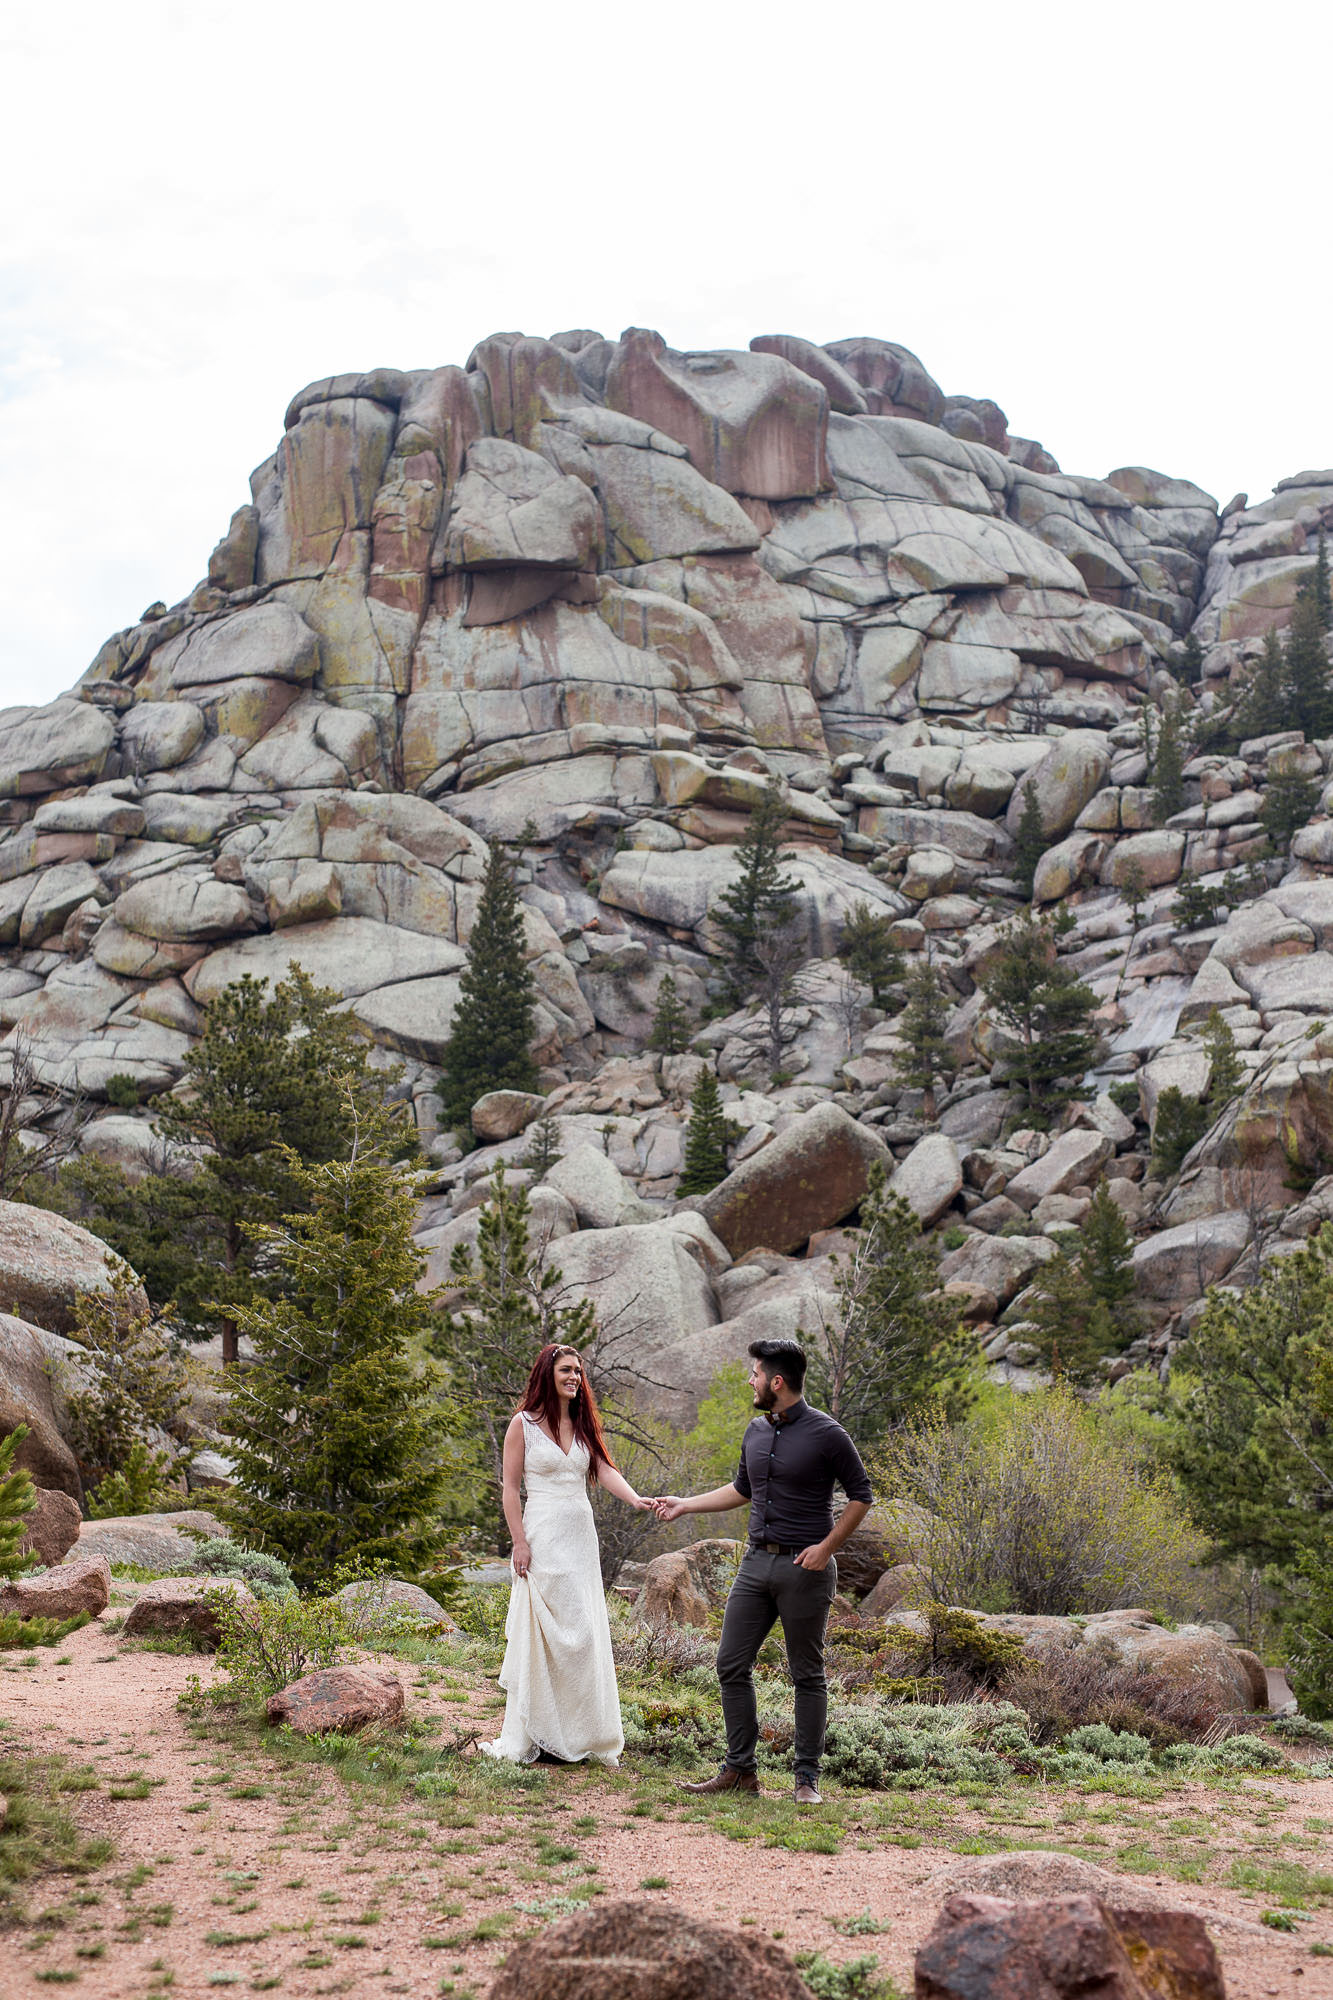 Vedawoo climbing area adventure wedding photos